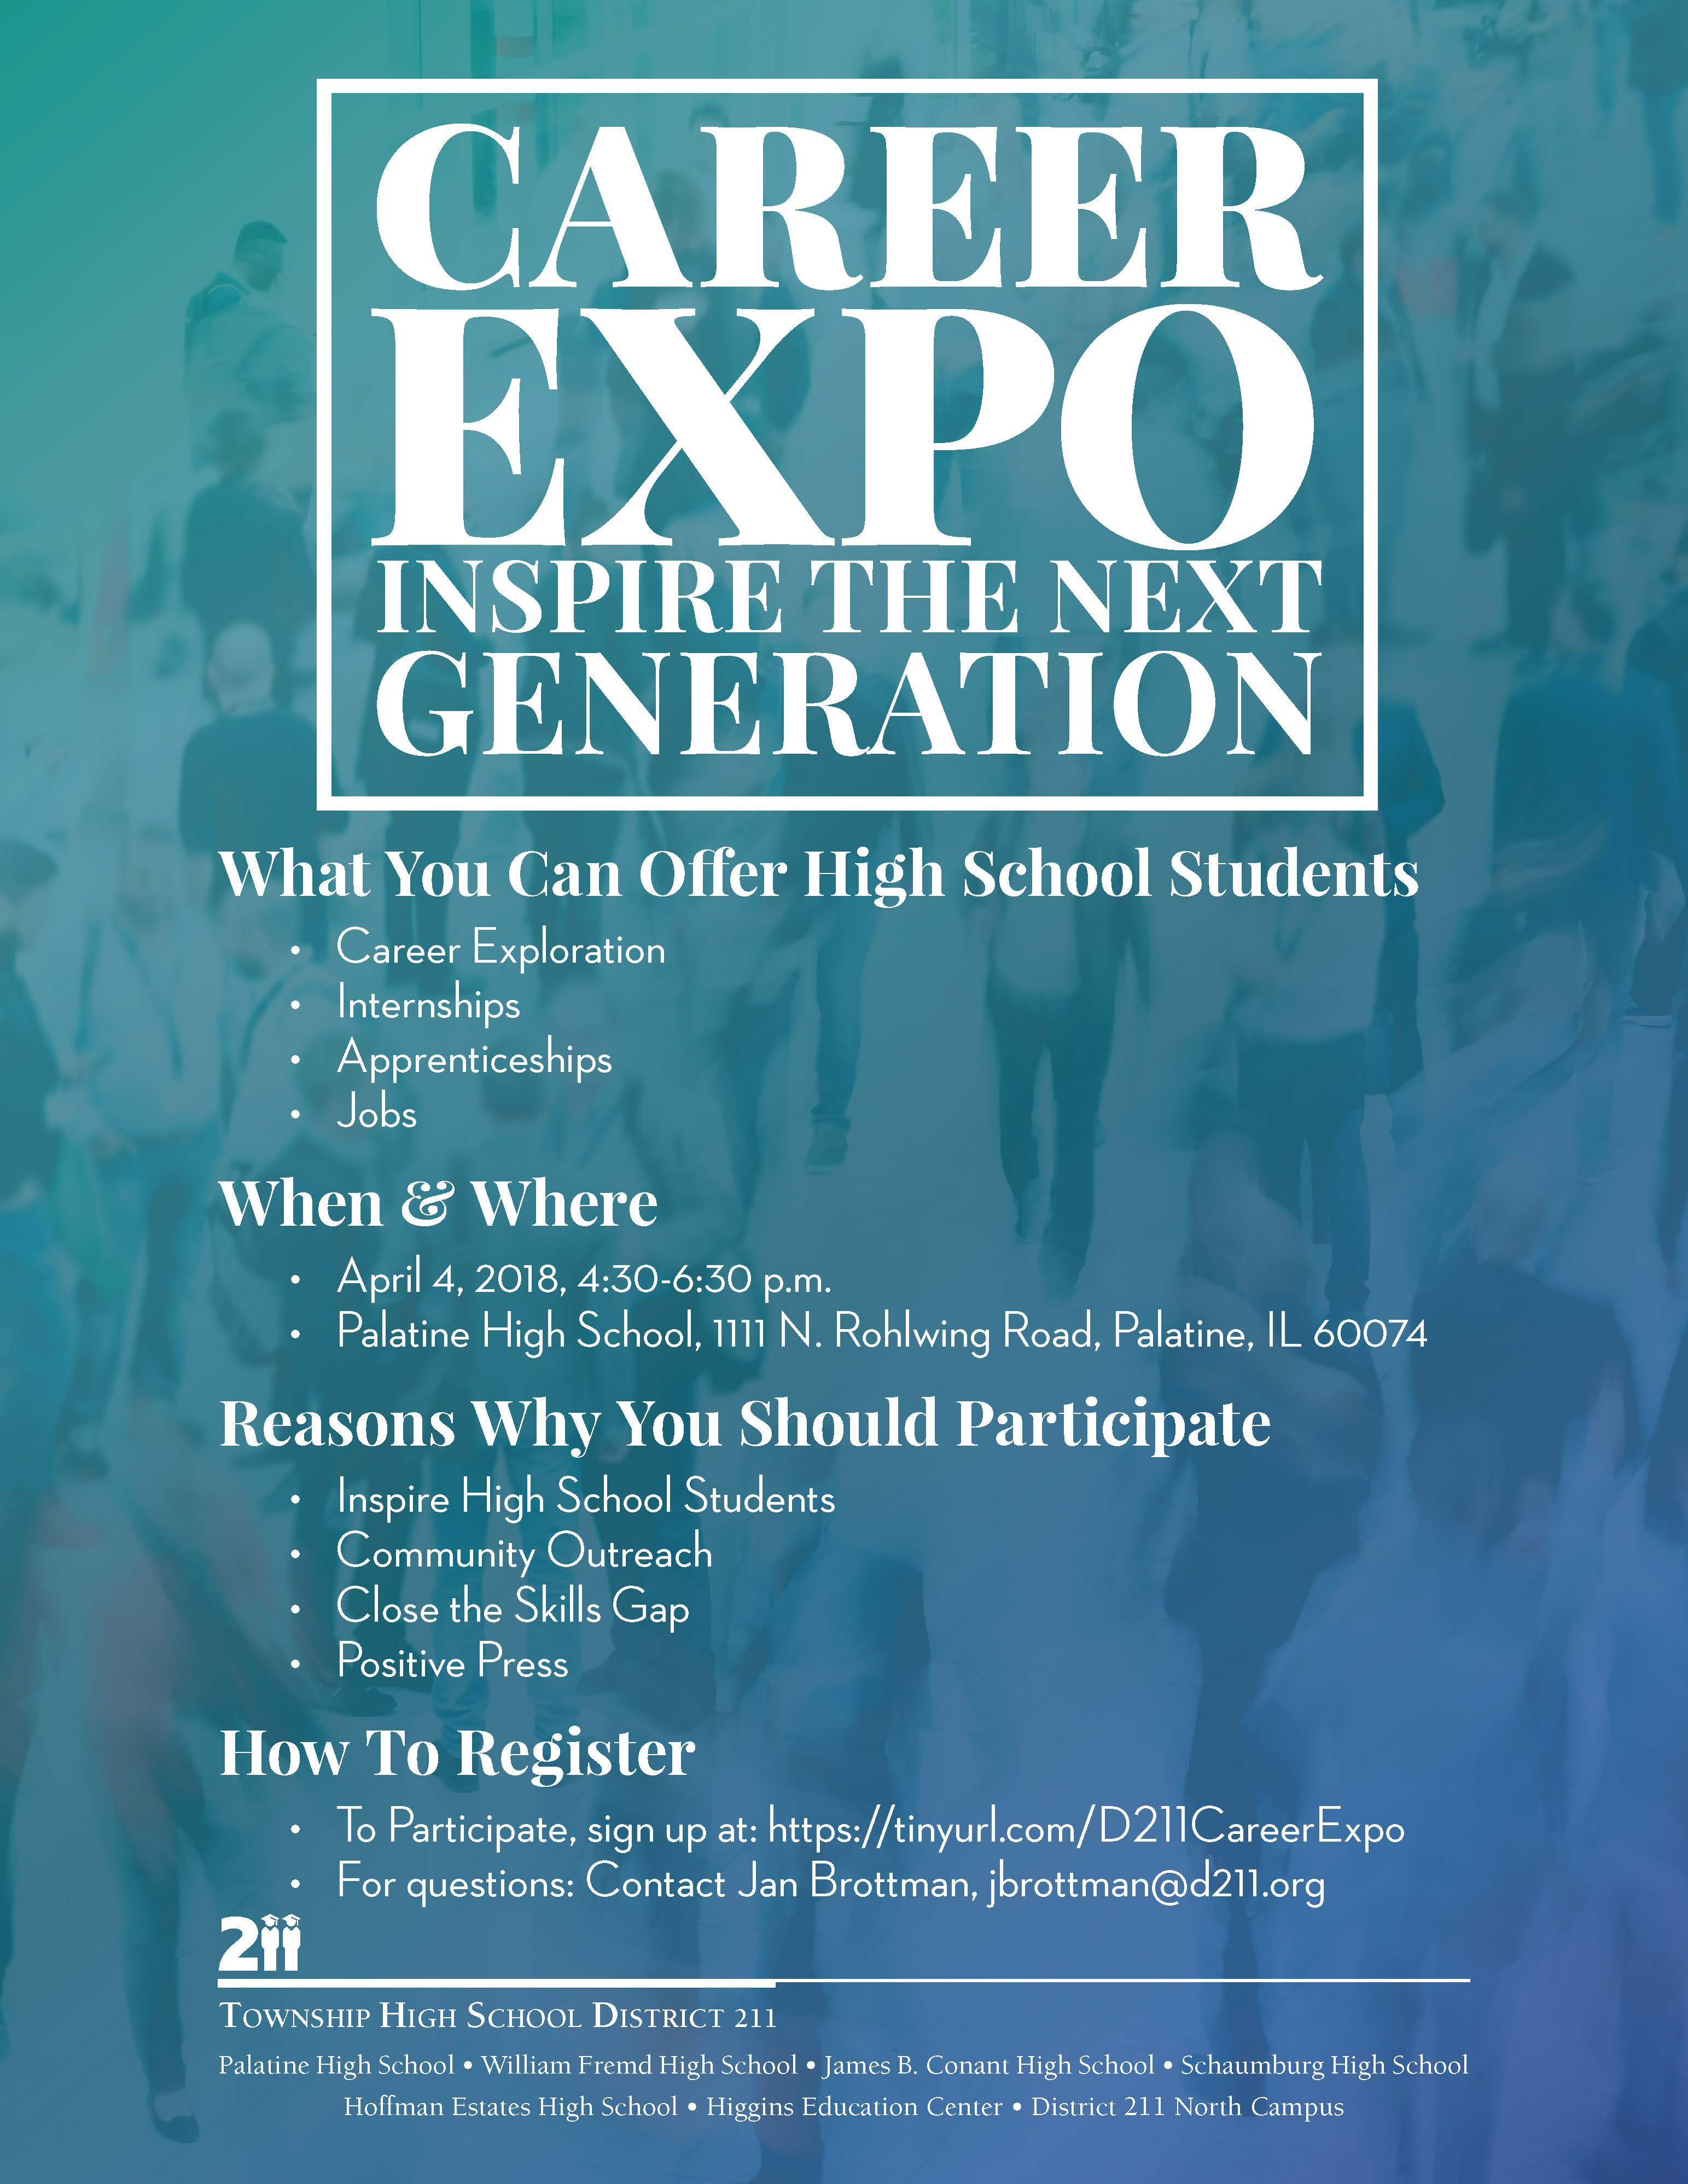 D211 Post | D211 Post: District 211 to Host Career Expo